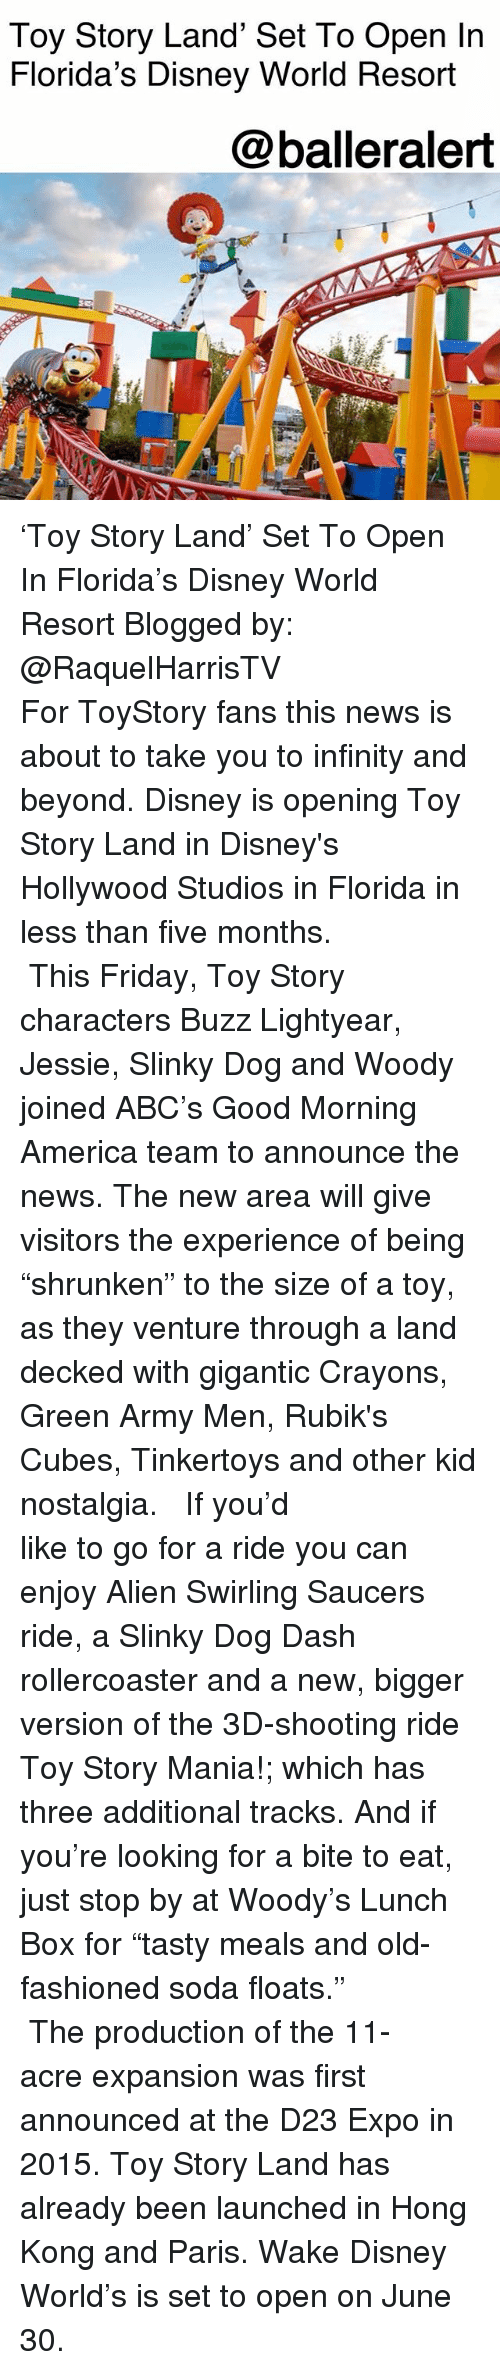 "Abc, America, and Disney: Toy Story Land' Set To Open In  Florida's Disney World Resort  @balleralert 'Toy Story Land' Set To Open In Florida's Disney World Resort Blogged by: @RaquelHarrisTV ⠀⠀⠀⠀⠀⠀⠀⠀⠀ ⠀⠀⠀⠀⠀⠀⠀⠀⠀ For ToyStory fans this news is about to take you to infinity and beyond. Disney is opening Toy Story Land in Disney's Hollywood Studios in Florida in less than five months. ⠀⠀⠀⠀⠀⠀⠀⠀⠀ ⠀⠀⠀⠀⠀⠀⠀⠀⠀ This Friday, Toy Story characters Buzz Lightyear, Jessie, Slinky Dog and Woody joined ABC's Good Morning America team to announce the news. The new area will give visitors the experience of being ""shrunken"" to the size of a toy, as they venture through a land decked with gigantic Crayons, Green Army Men, Rubik's Cubes, Tinkertoys and other kid nostalgia. ⠀⠀⠀⠀⠀⠀⠀⠀⠀ ⠀⠀⠀⠀⠀⠀⠀⠀⠀ If you'd like to go for a ride you can enjoy Alien Swirling Saucers ride, a Slinky Dog Dash rollercoaster and a new, bigger version of the 3D-shooting ride Toy Story Mania!; which has three additional tracks. And if you're looking for a bite to eat, just stop by at Woody's Lunch Box for ""tasty meals and old-fashioned soda floats."" ⠀⠀⠀⠀⠀⠀⠀⠀⠀ ⠀⠀⠀⠀⠀⠀⠀⠀⠀ The production of the 11-acre expansion was first announced at the D23 Expo in 2015. Toy Story Land has already been launched in Hong Kong and Paris. Wake Disney World's is set to open on June 30."